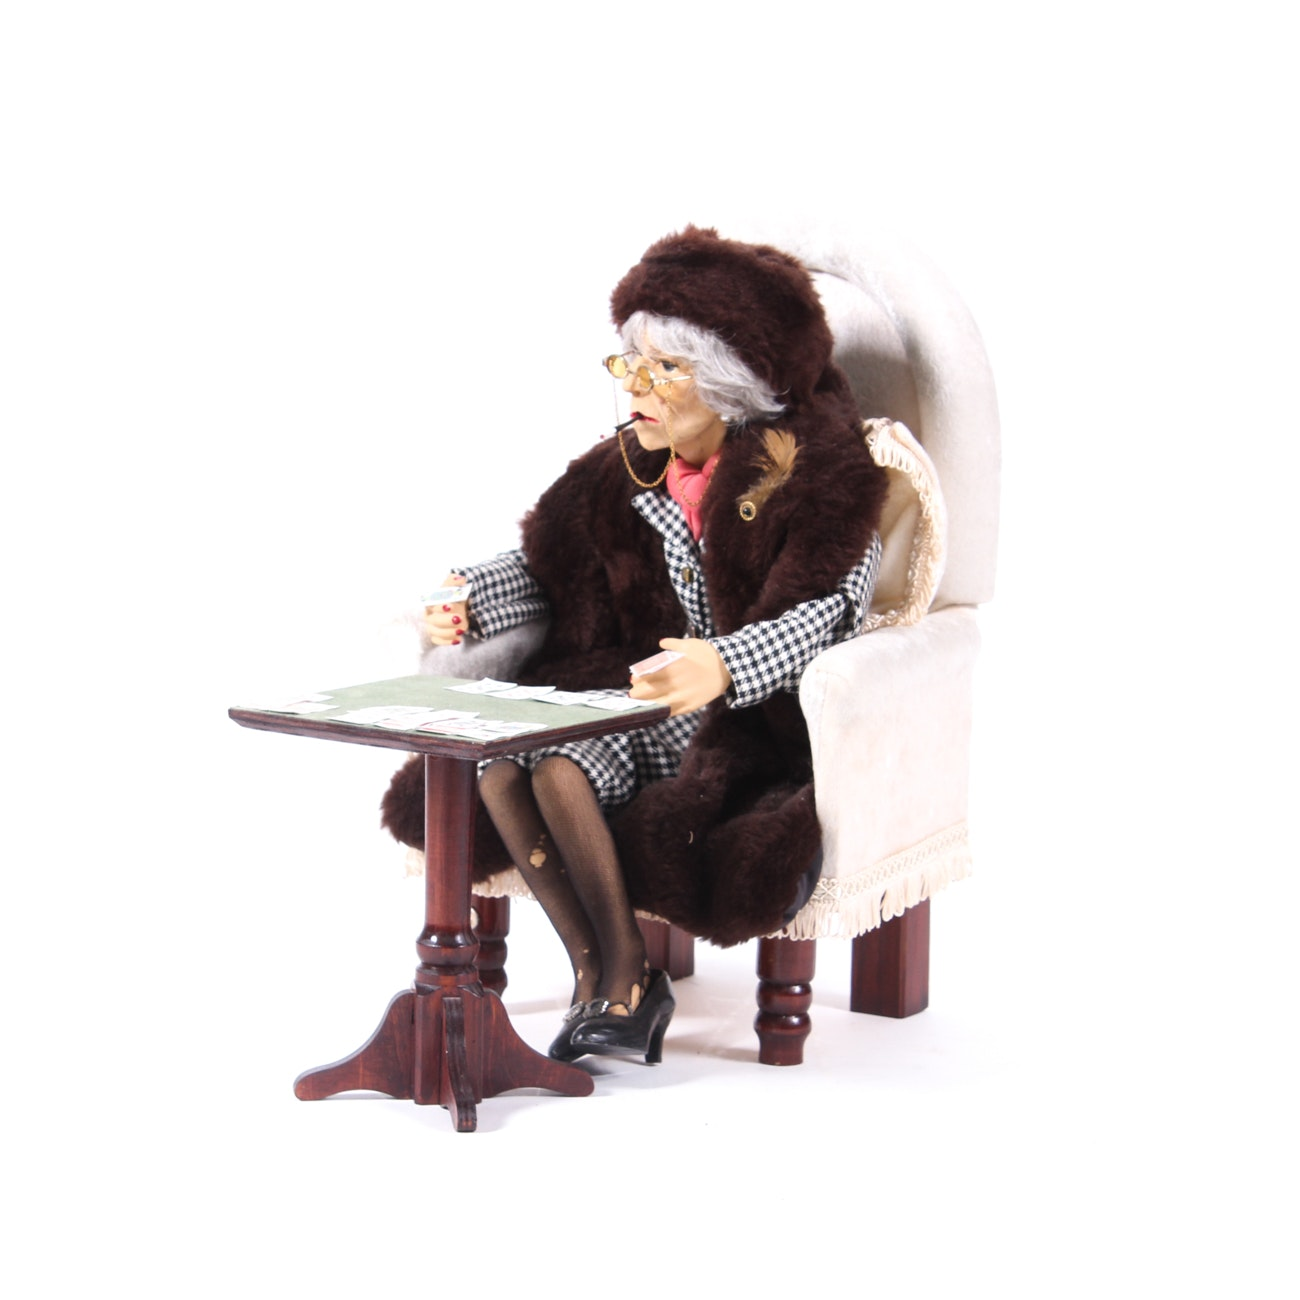 """Hobo Designs Limited Edition """"Hilda"""" Resin Sculpture by Scott and Gill Harris"""